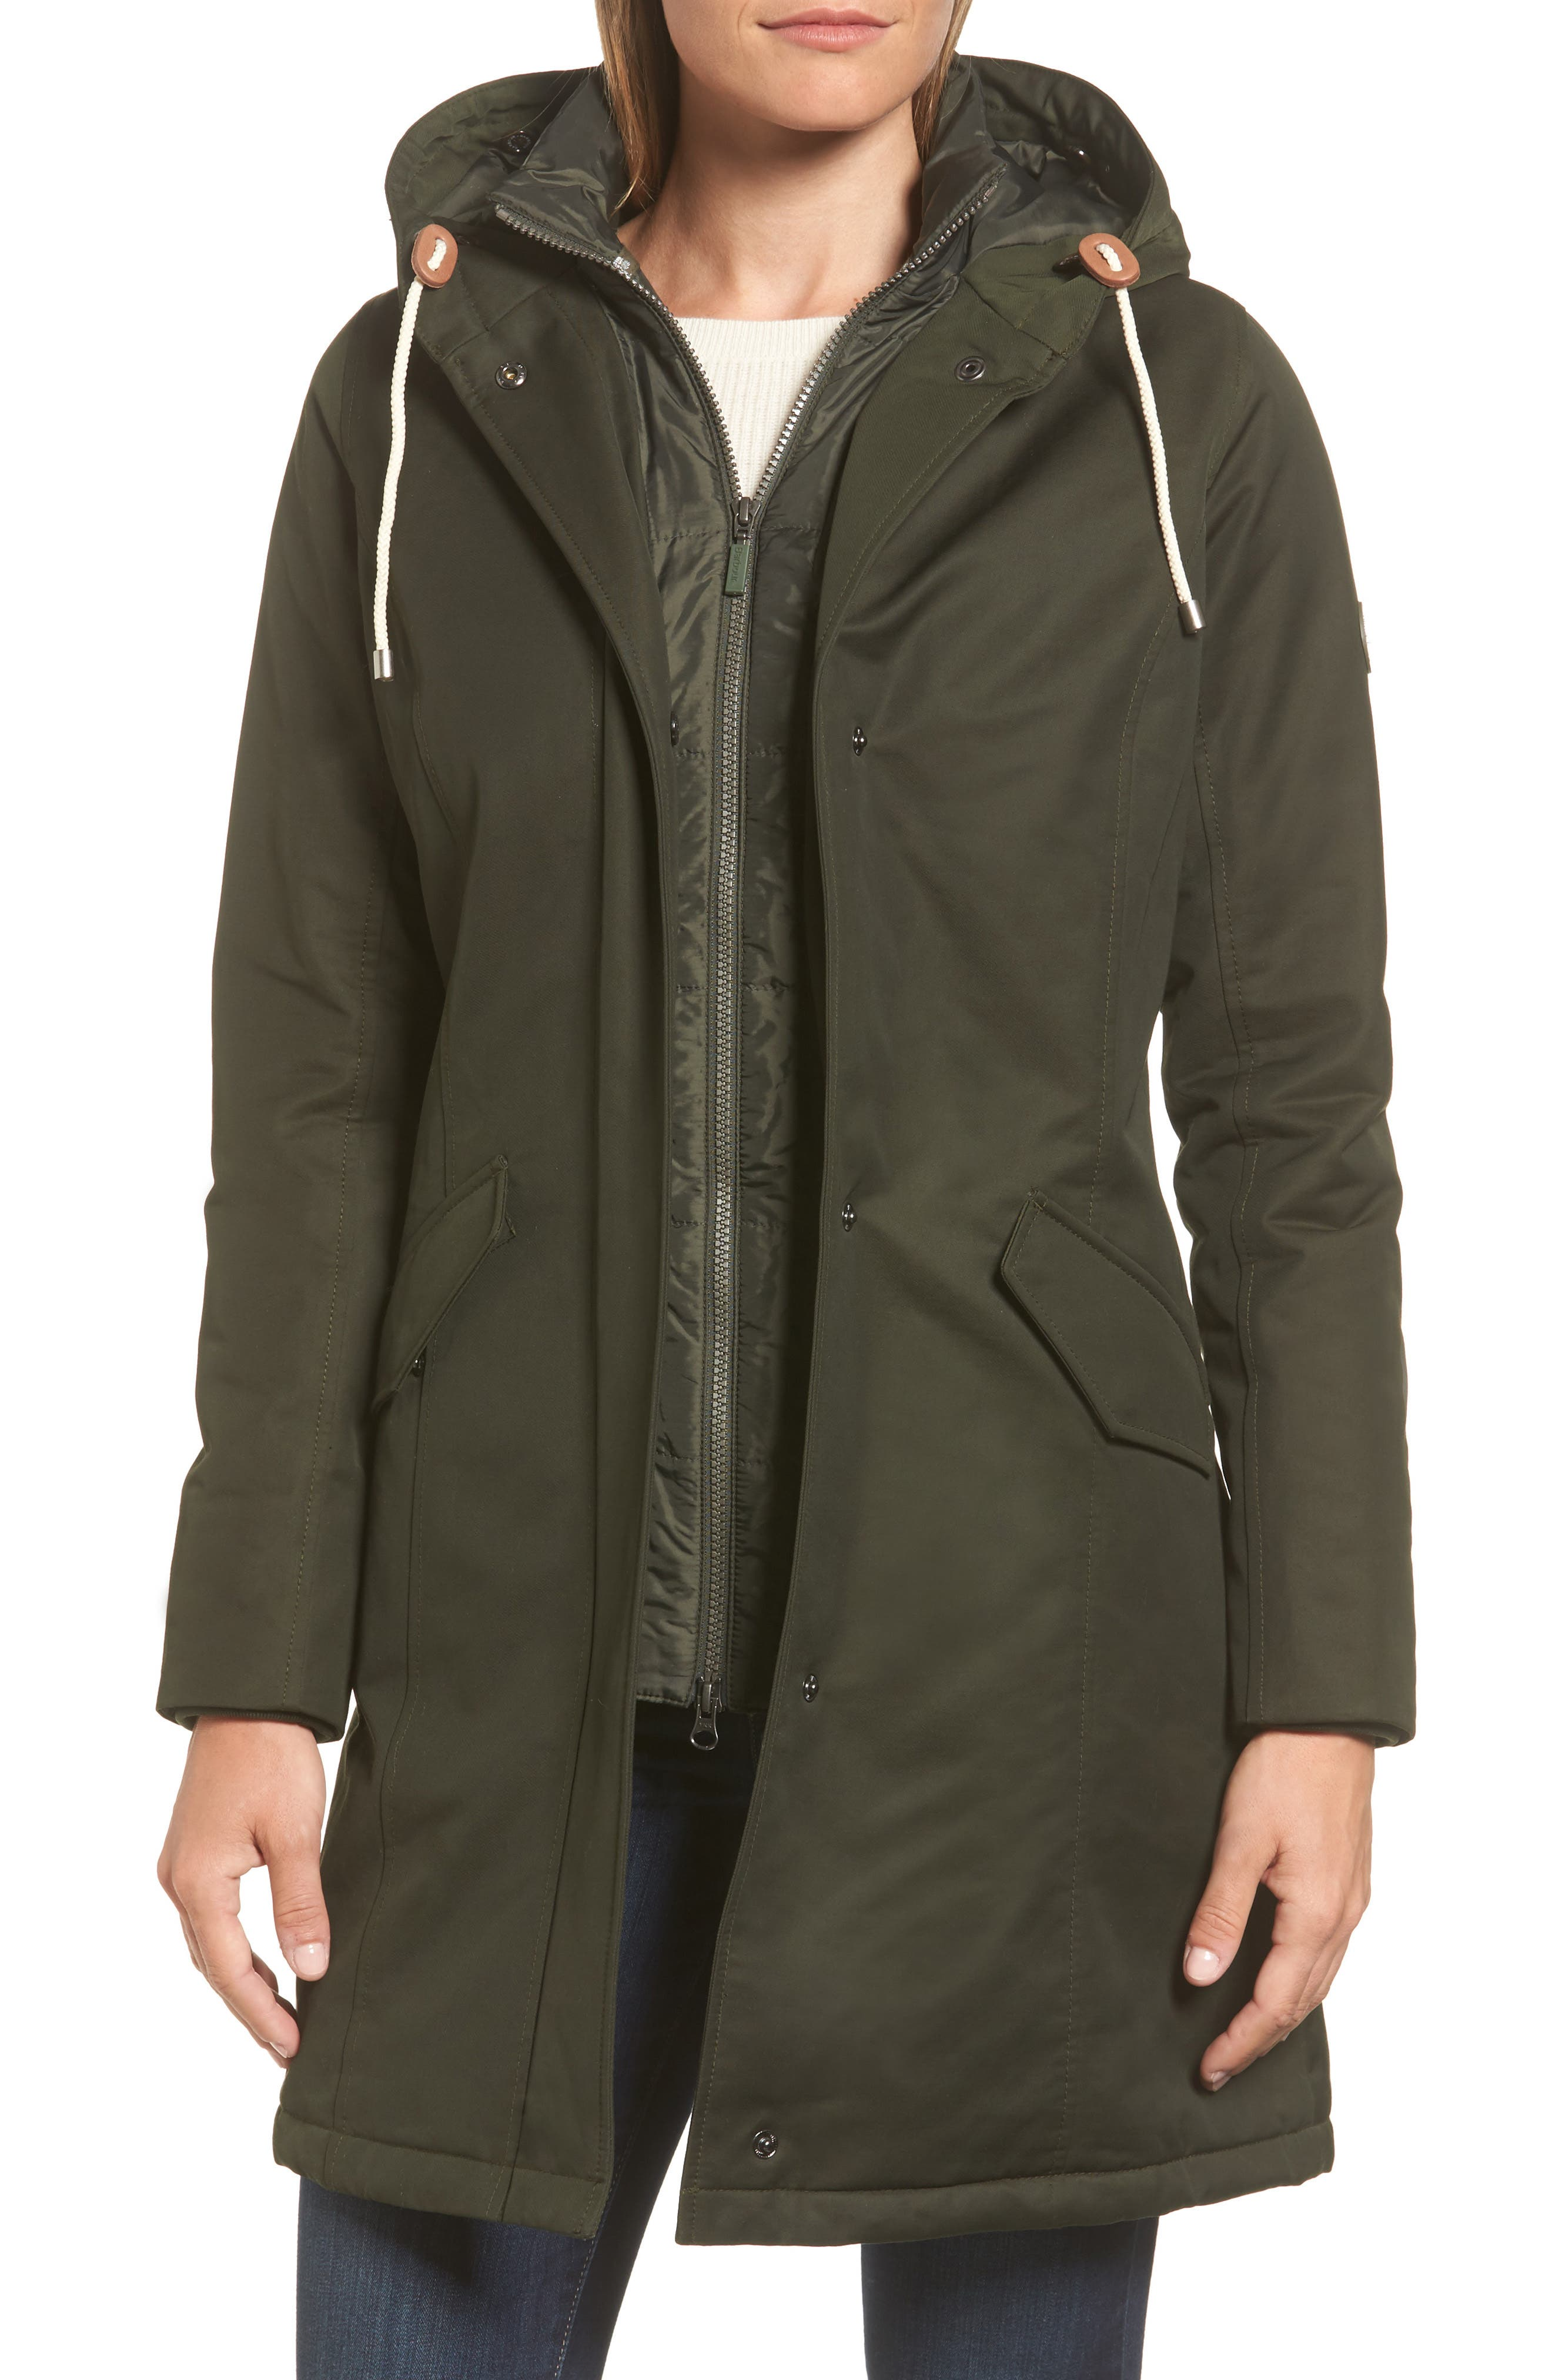 Filey Waterproof Hooded Jacket with Faux Fur Trim,                             Alternate thumbnail 4, color,                             302